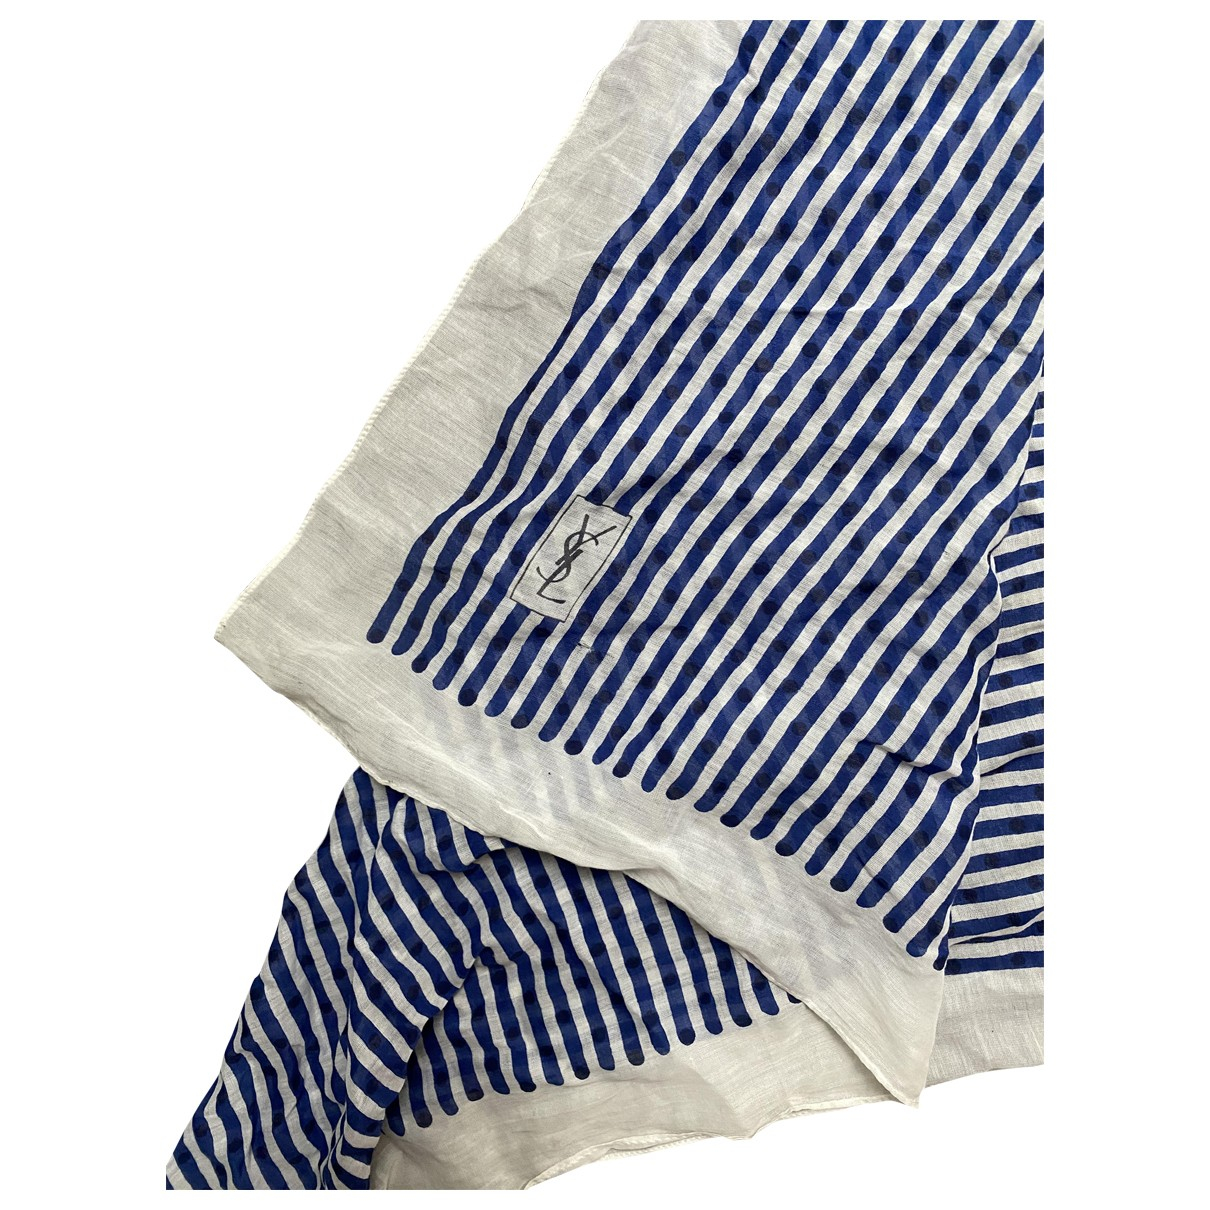 Yves Saint Laurent \N Blue Cotton Silk handkerchief for Women \N